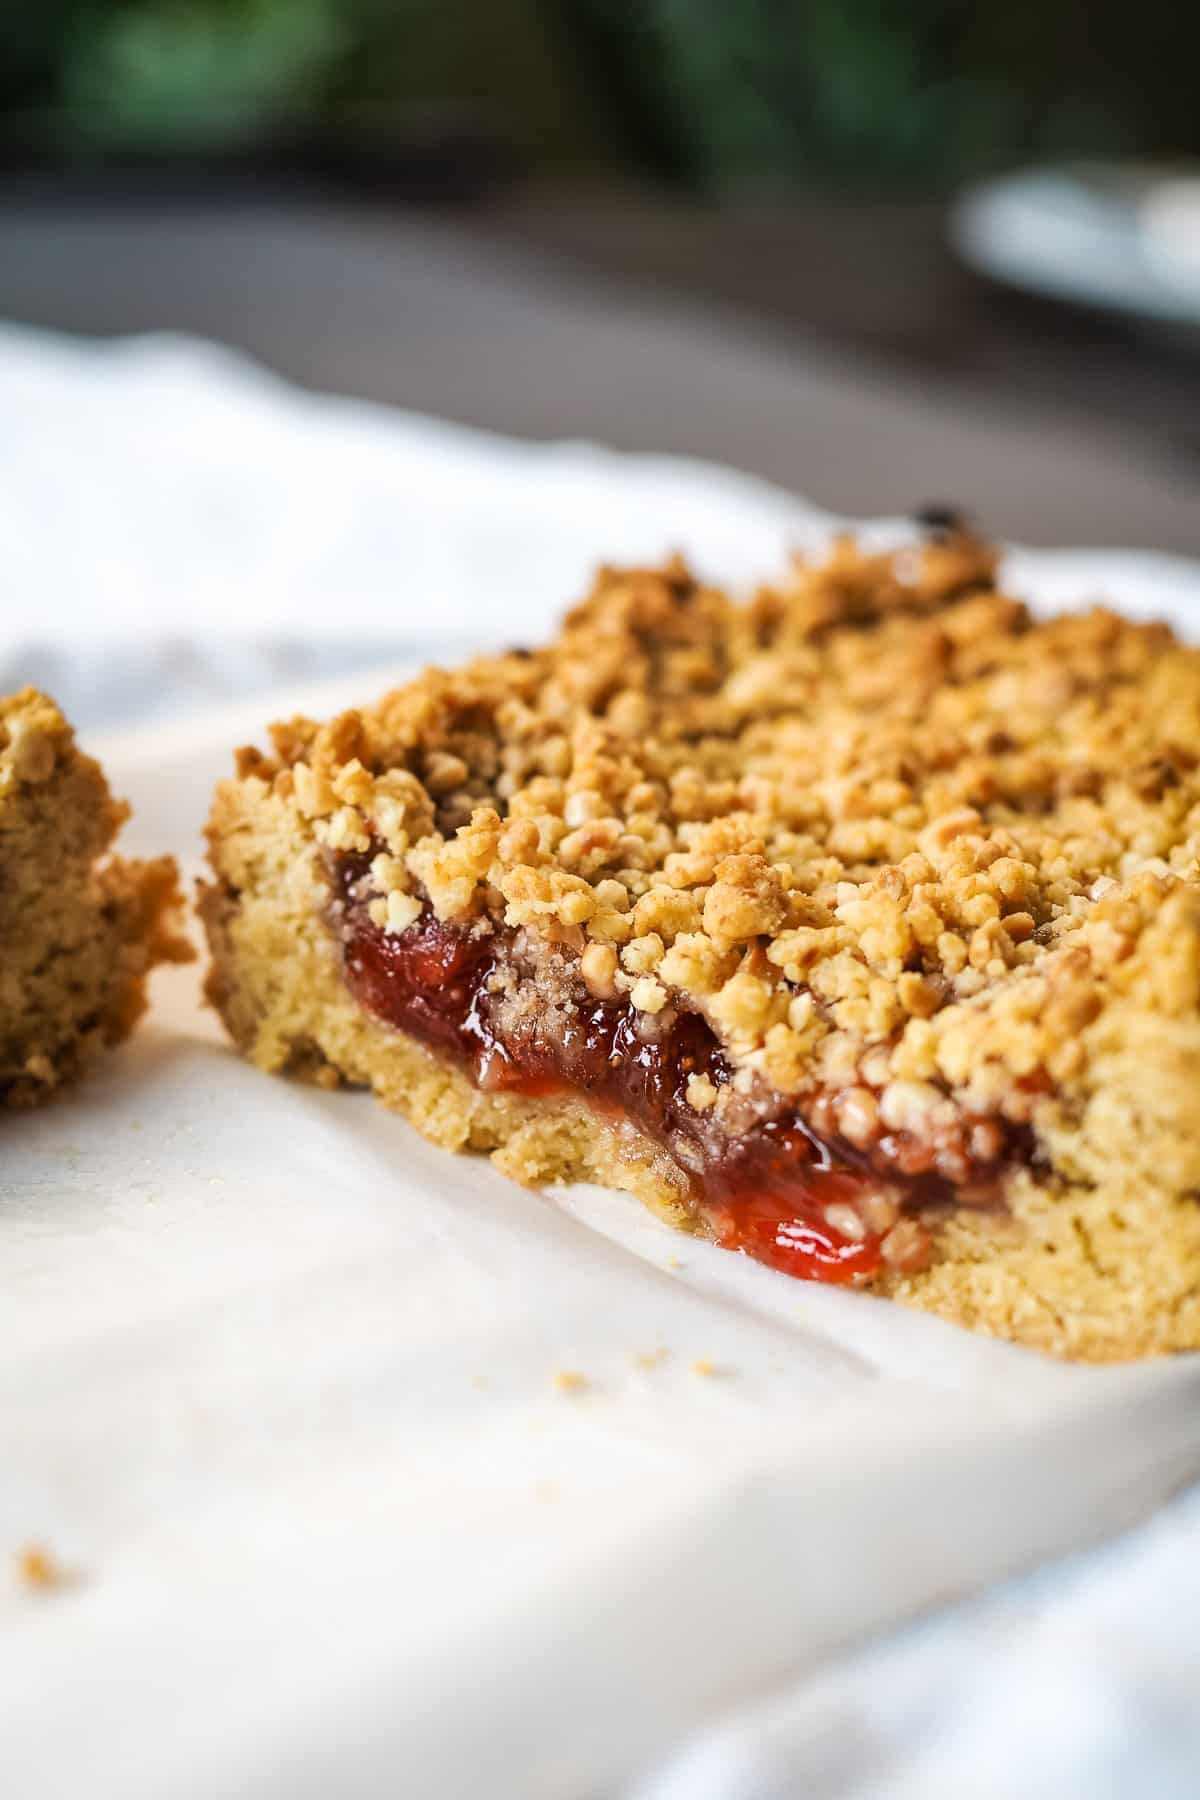 Sliced strawberry oat bar on a kitchen towel